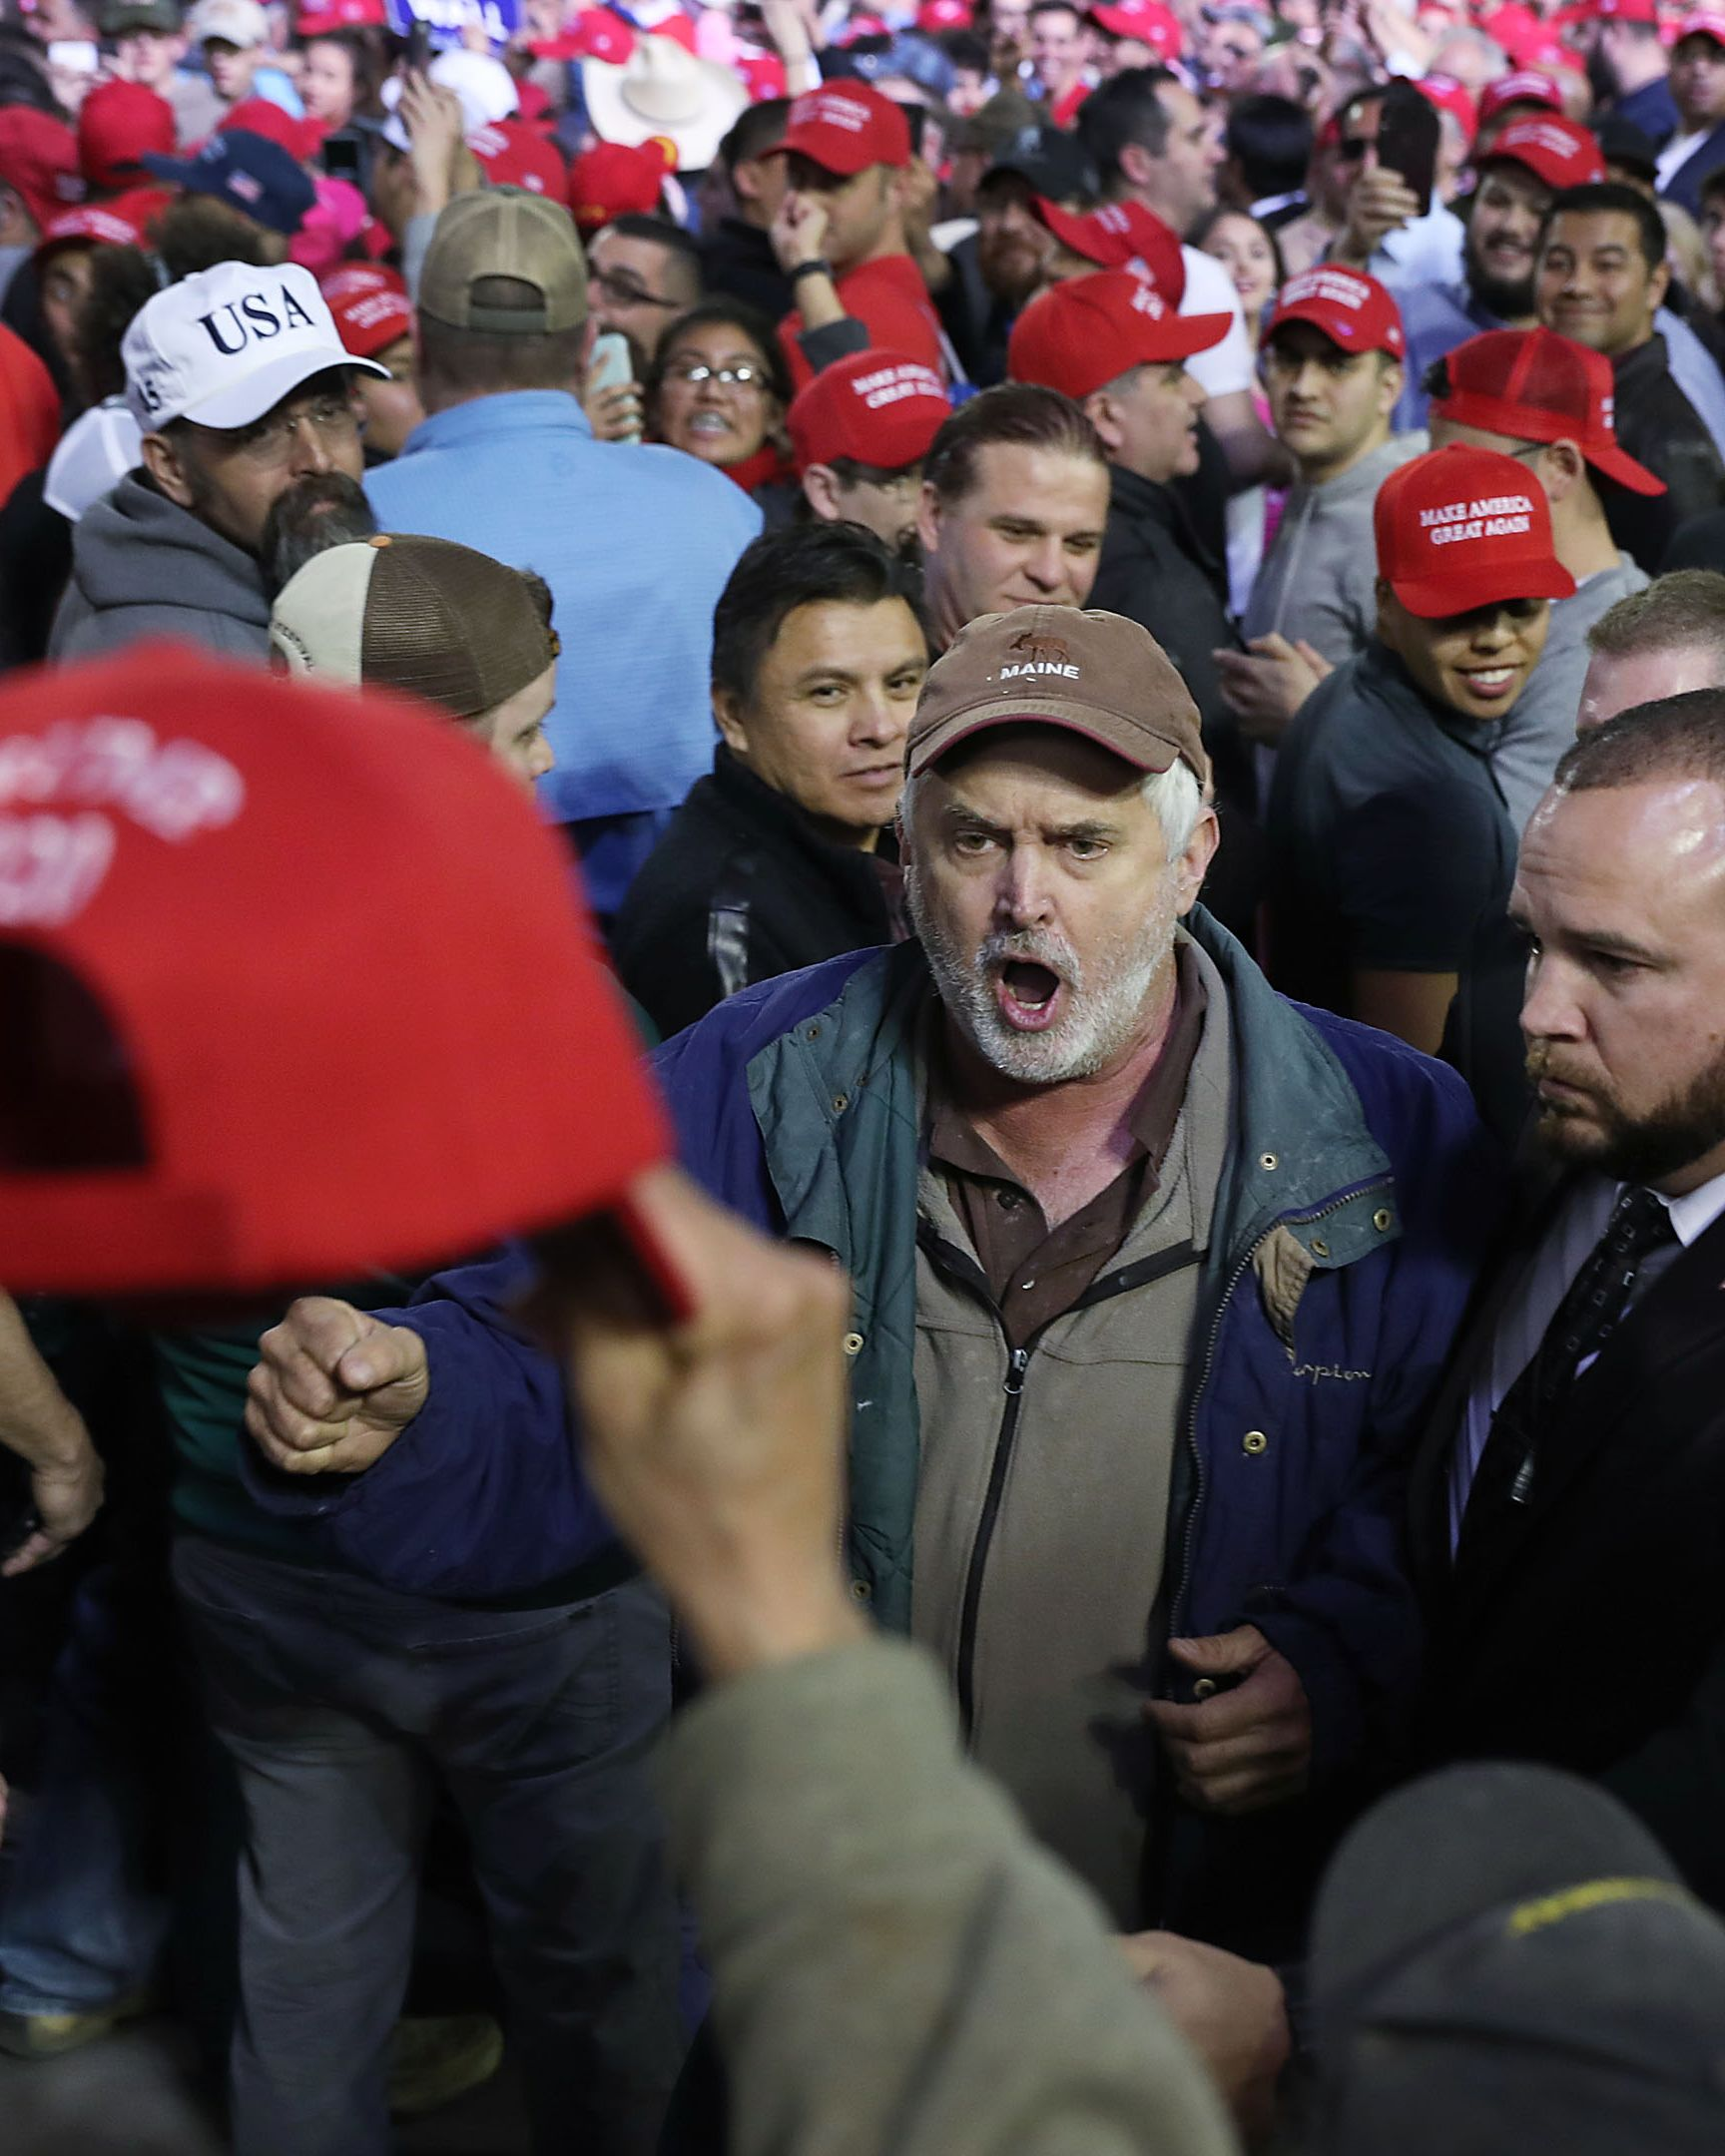 A Trump supporter yells at protesters as they're removed from the rally in El Paso.